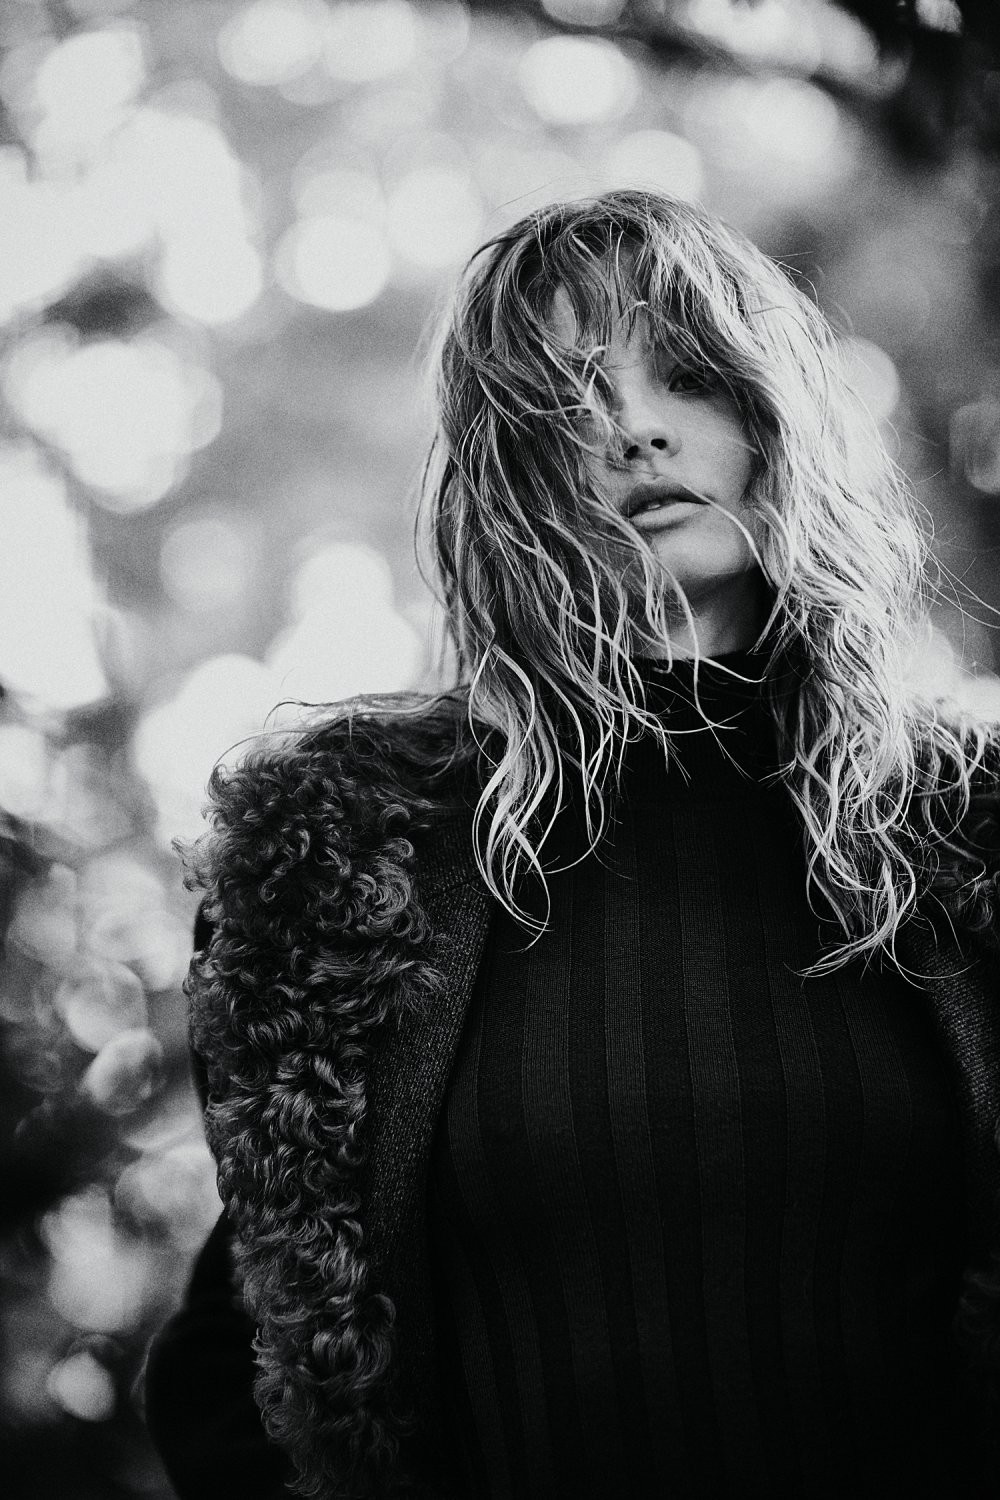 magdalena-frackowiak-by-emma-tempest-for-mixte-magazine-9-fall-winter-2014-2015-4